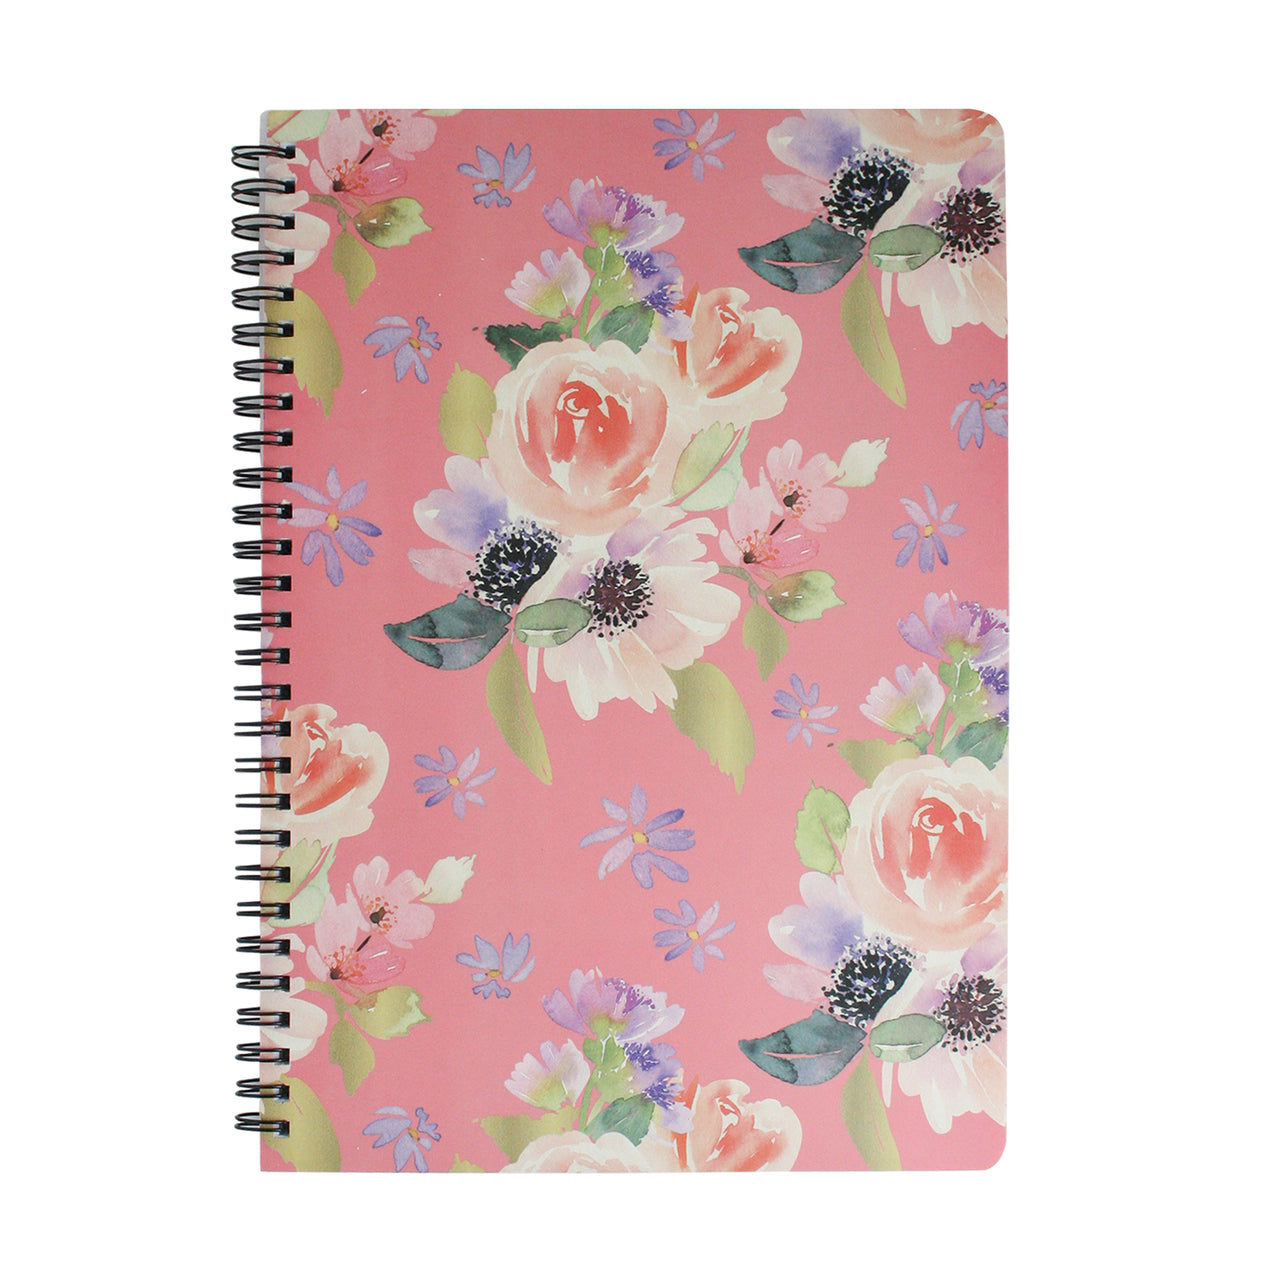 B5 Floral Notebook - Hot Pink